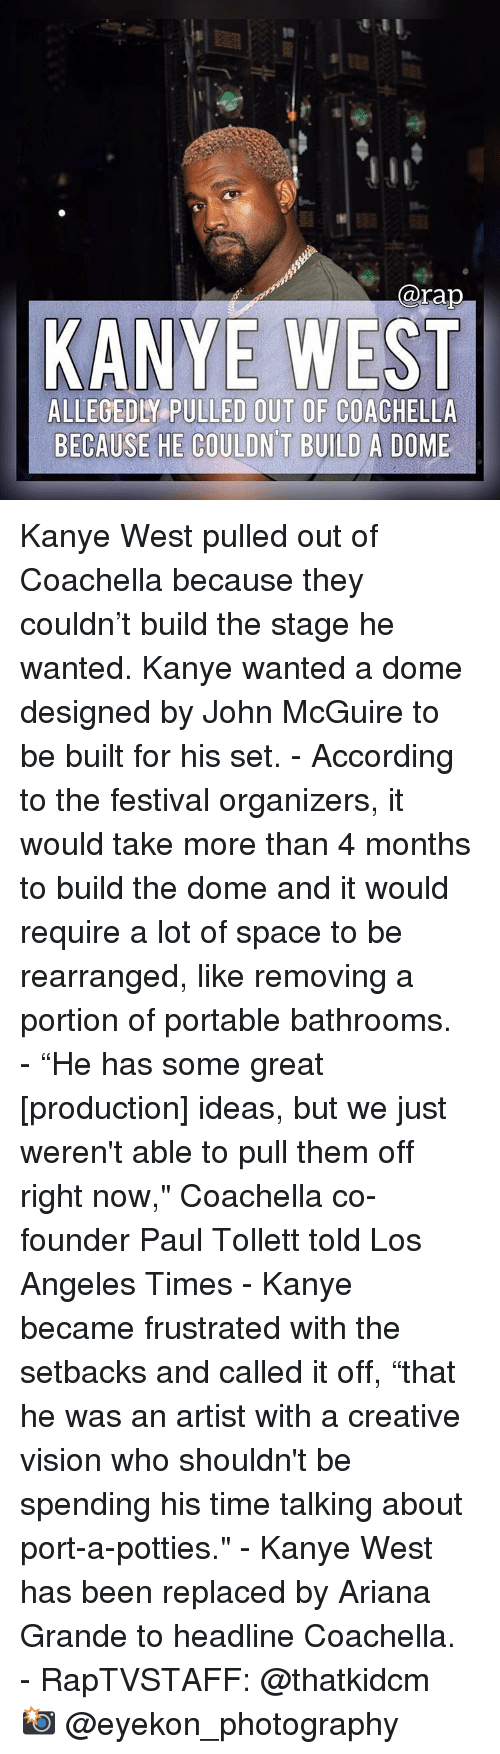 """Ariana Grande, Coachella, and Kanye: @rap  KANYE WEST  ALLEGEDLY PULLED OUT OF COACHELLA  BECAUSE HE COULDN T BUILD A DOME Kanye West pulled out of Coachella because they couldn't build the stage he wanted. Kanye wanted a dome designed by John McGuire to be built for his set. - According to the festival organizers, it would take more than 4 months to build the dome and it would require a lot of space to be rearranged, like removing a portion of portable bathrooms. - """"He has some great [production] ideas, but we just weren't able to pull them off right now,"""" Coachella co-founder Paul Tollett told Los Angeles Times - Kanye became frustrated with the setbacks and called it off, """"that he was an artist with a creative vision who shouldn't be spending his time talking about port-a-potties."""" - Kanye West has been replaced by Ariana Grande to headline Coachella. - RapTVSTAFF: @thatkidcm 📸 @eyekon_photography"""